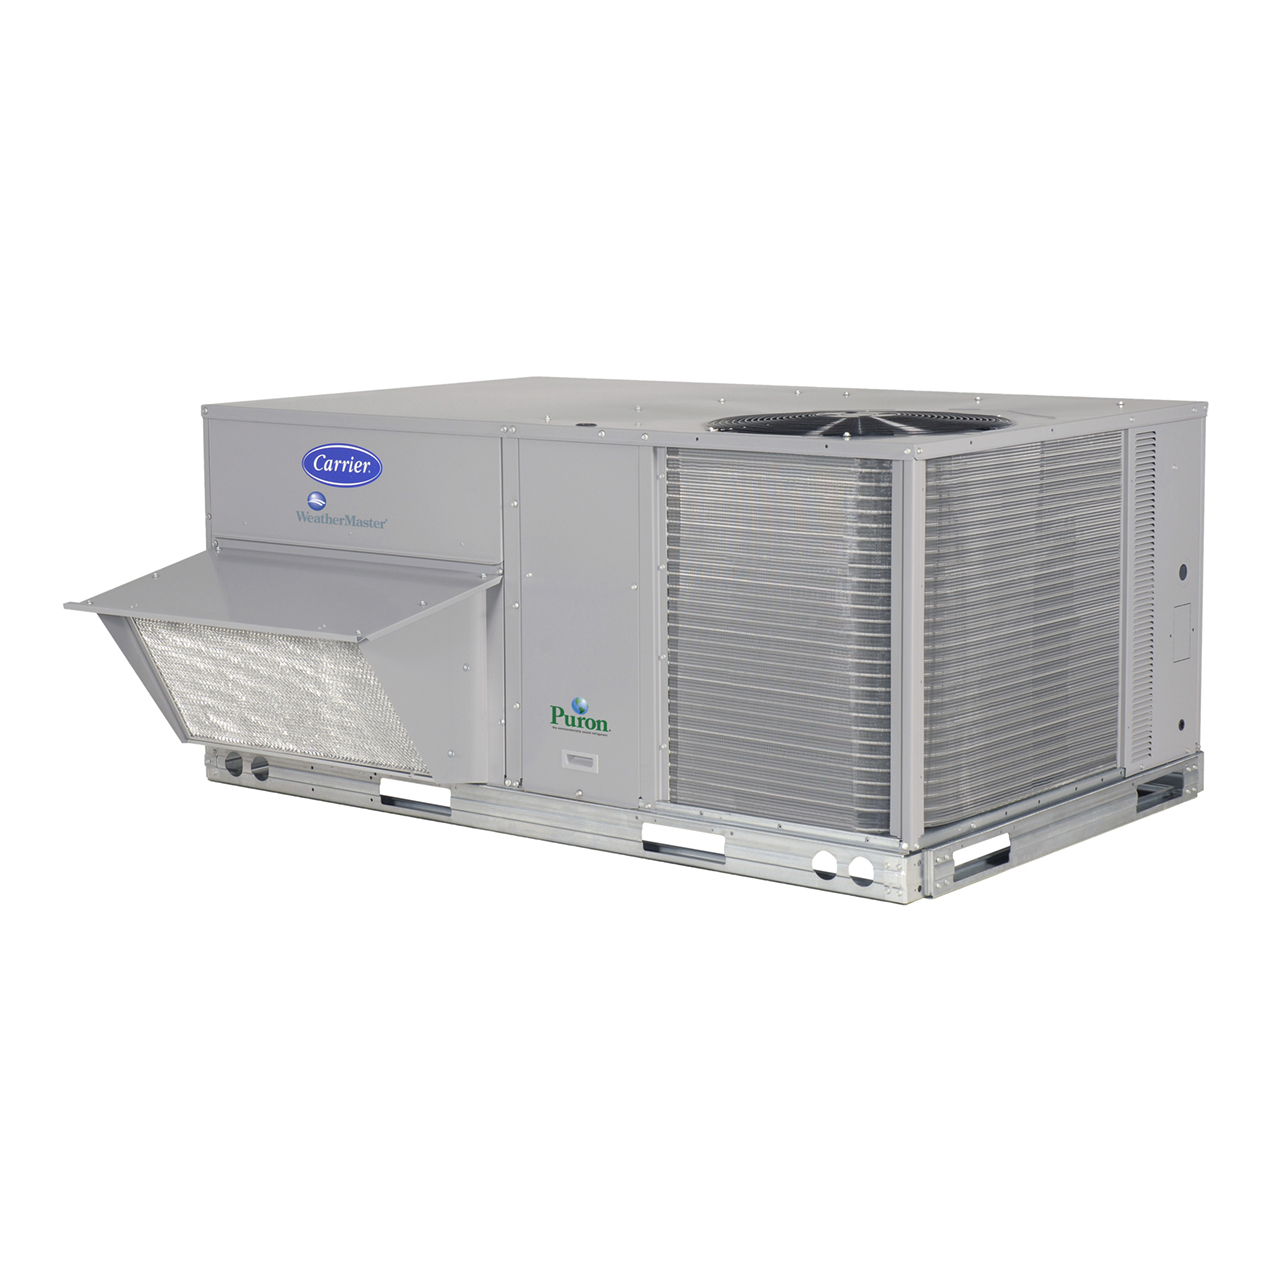 "WeatherMaker® 50KCQ rooftop units were designed to be easy to install, maintain, and operate, with customer-requested features including a gage port, centralized control center, plug-and-play accessory board, ""no-strip screw"" collars, and handled access panels."